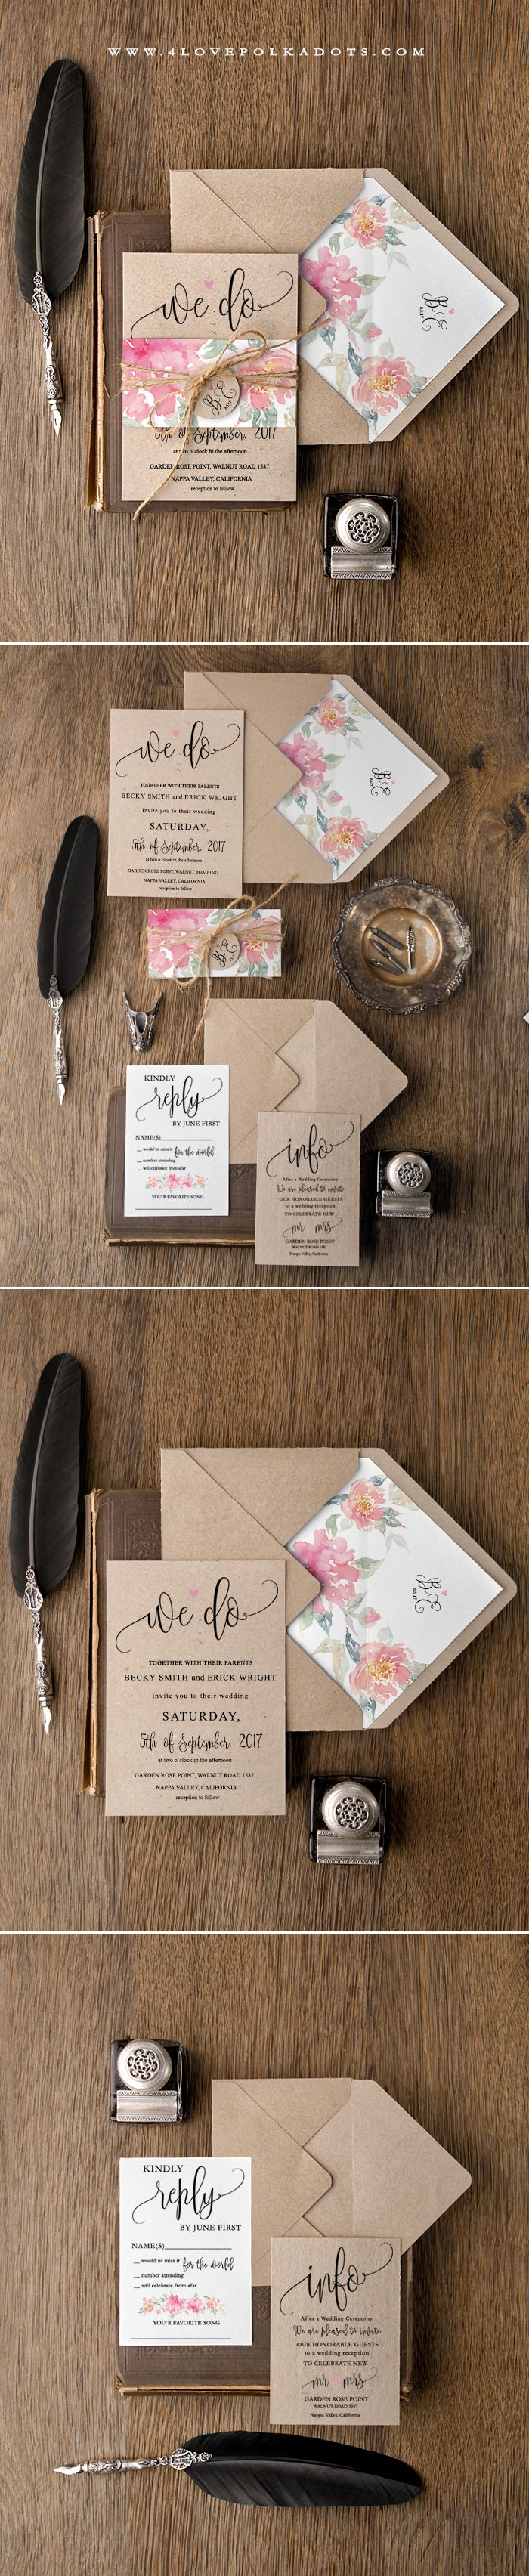 300 Best Diy Party Invitation Cards Images On Pinterest